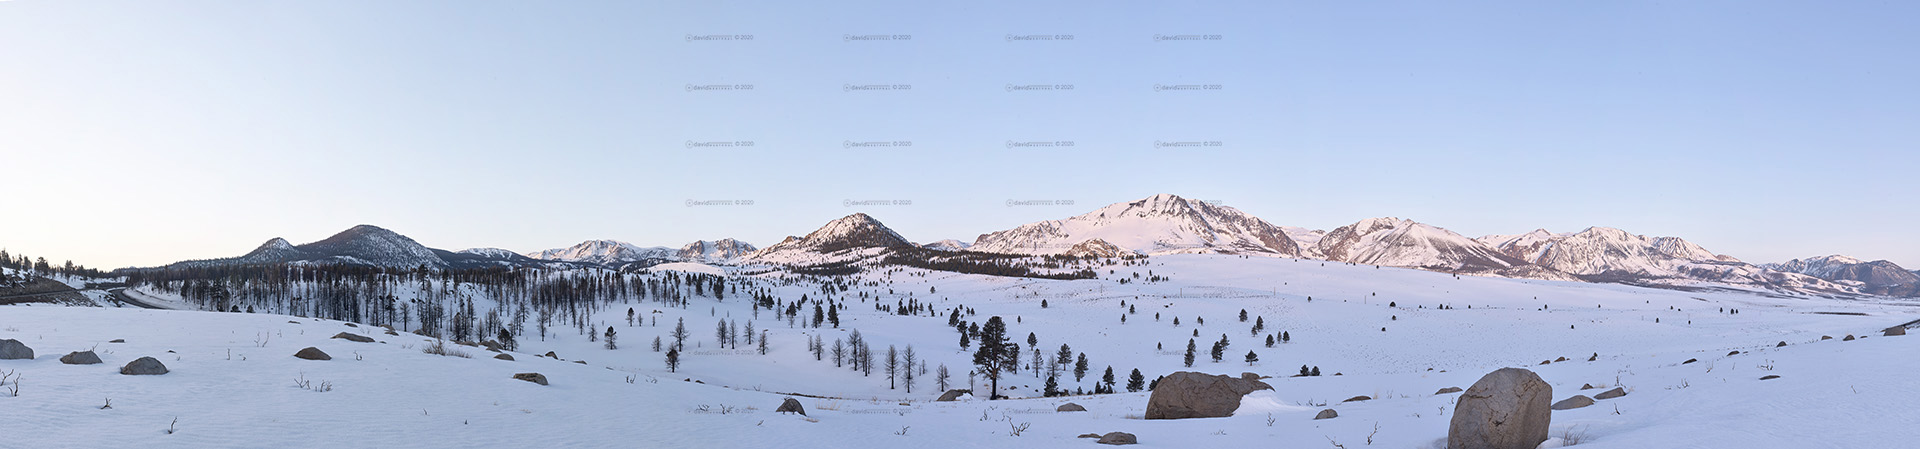 dw_1003_mammoth_mtns_031510_0115_comp_1920pxl